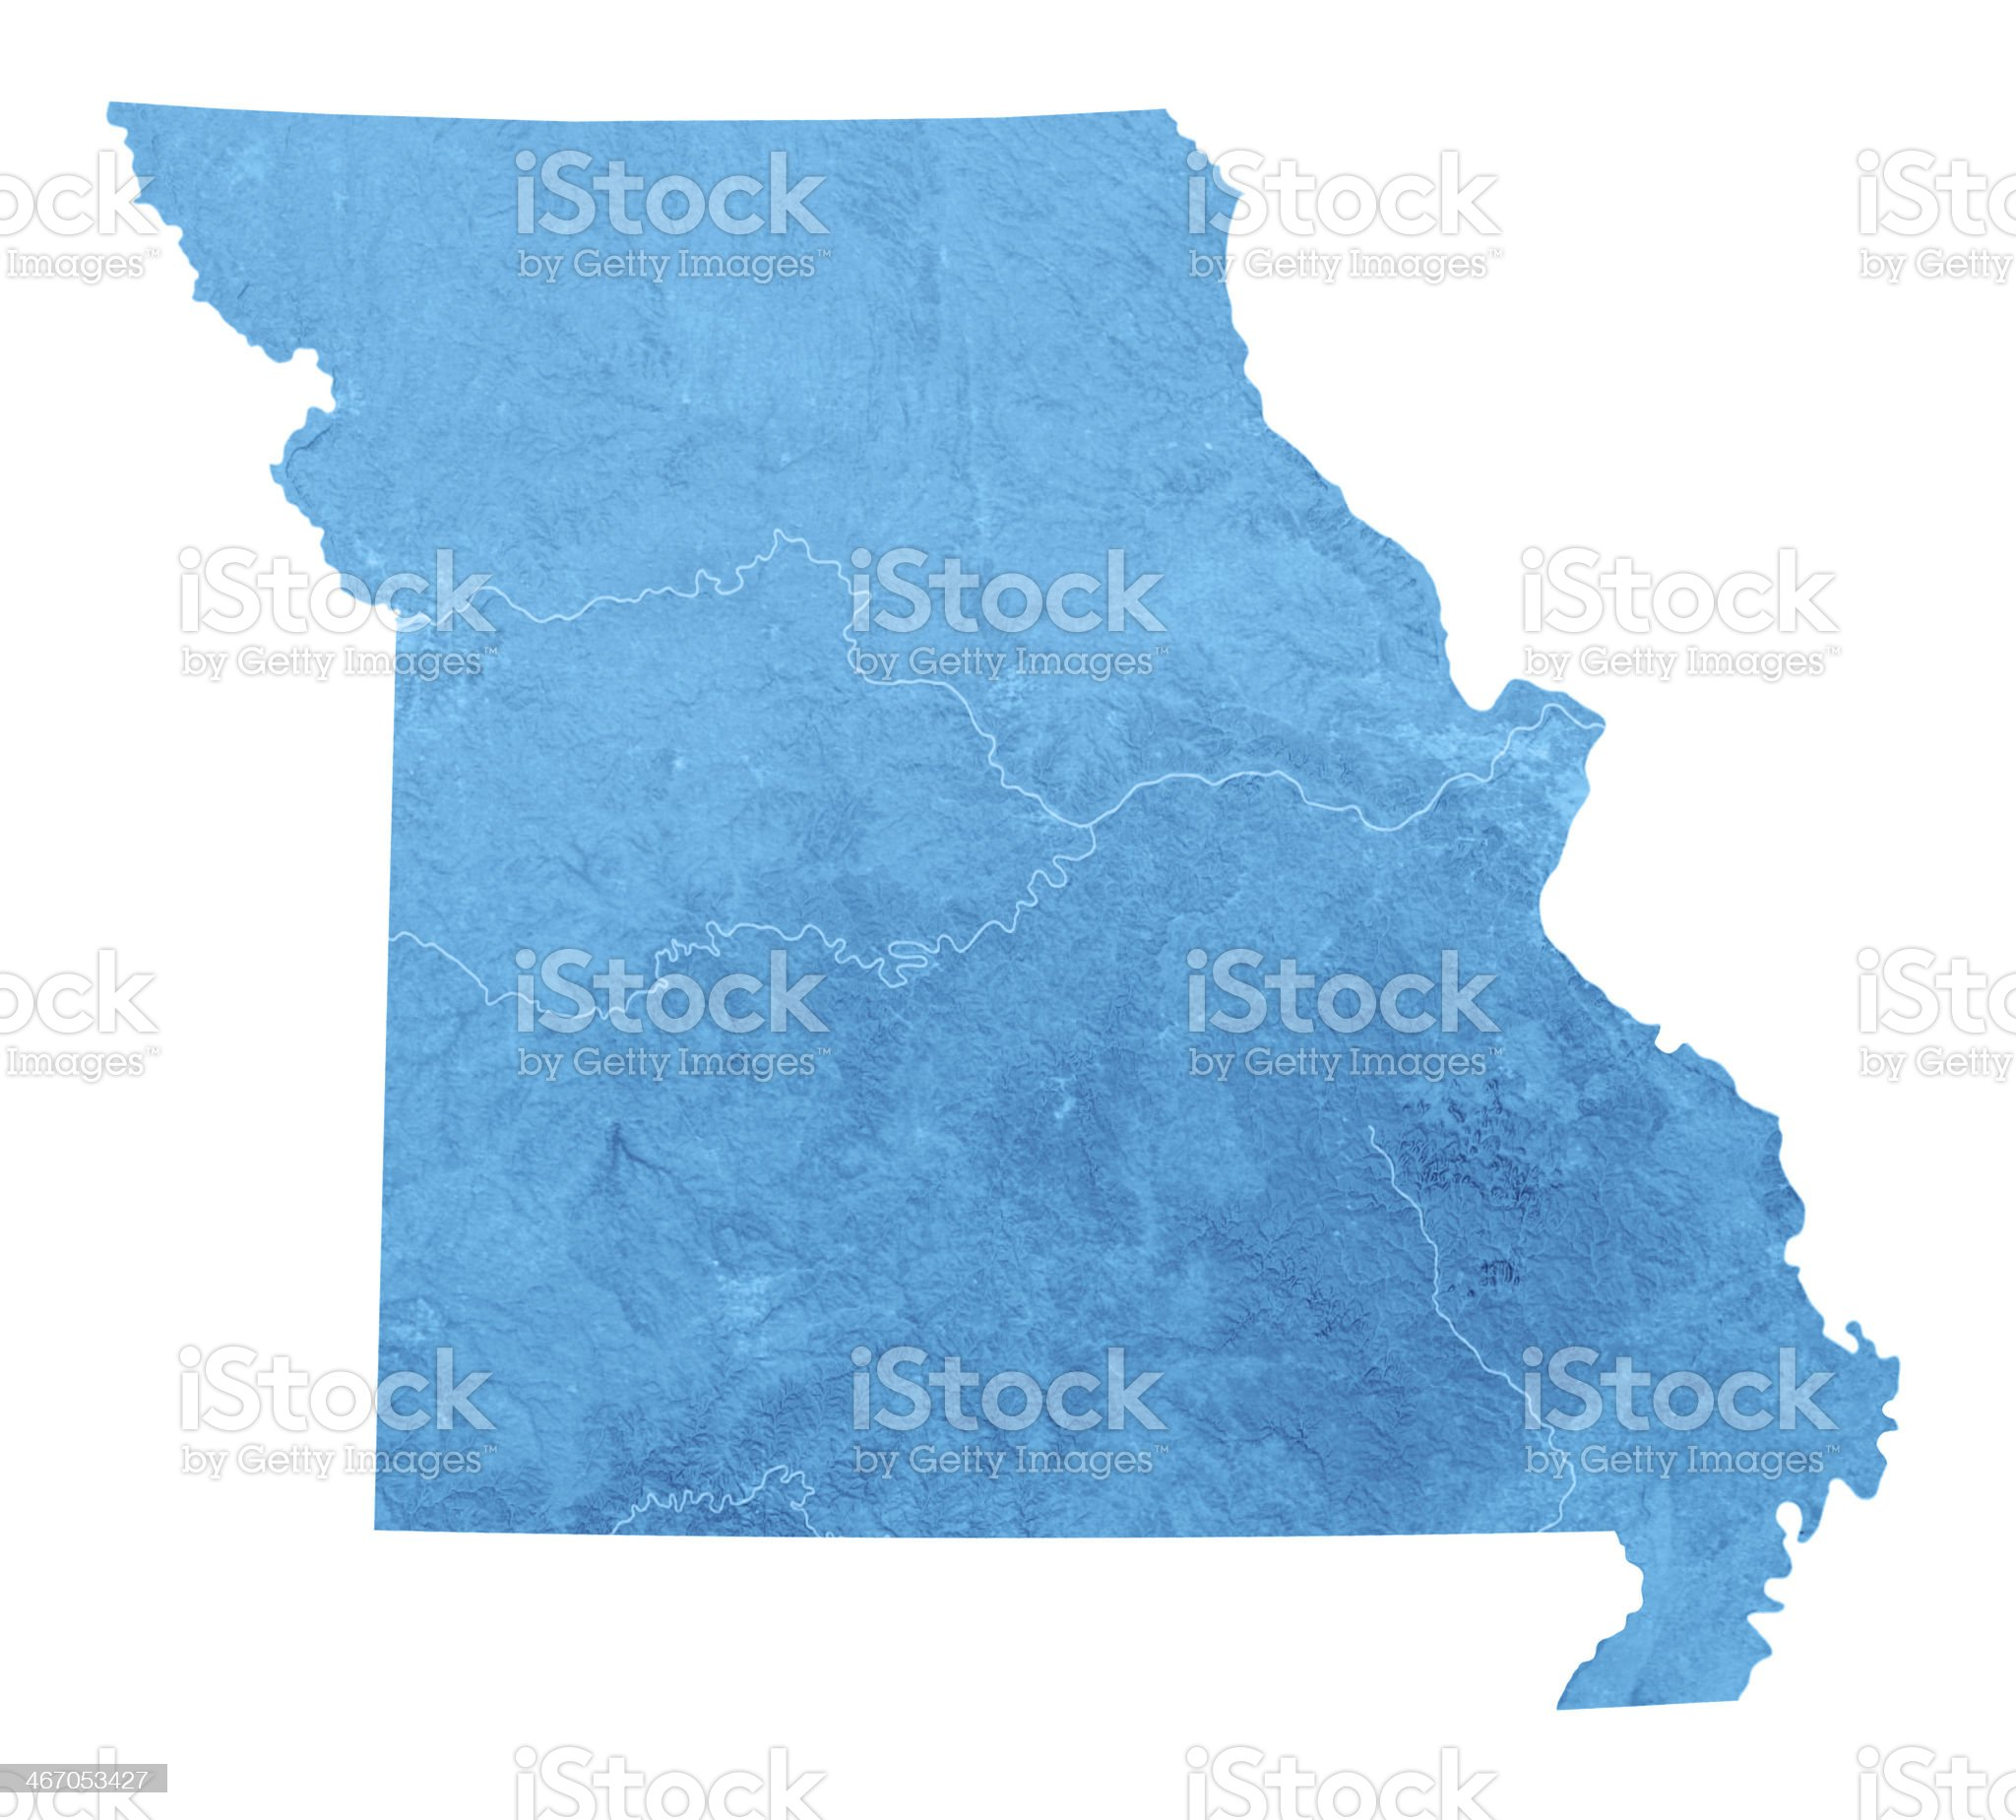 Missouri Topographic Map Isolated royalty-free stock photo